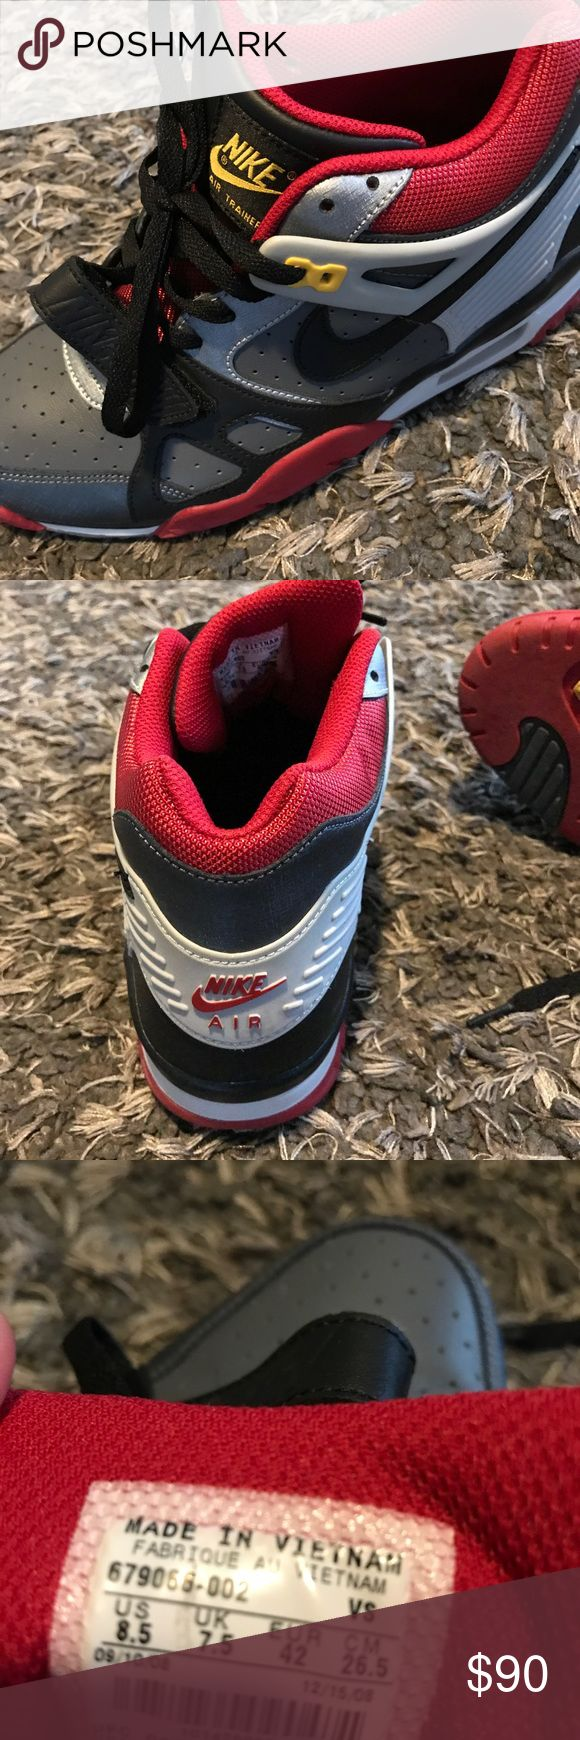 new product 3568a 15e9c Nike trainer Size 8.5 men Nike Shoes Athletic Shoes